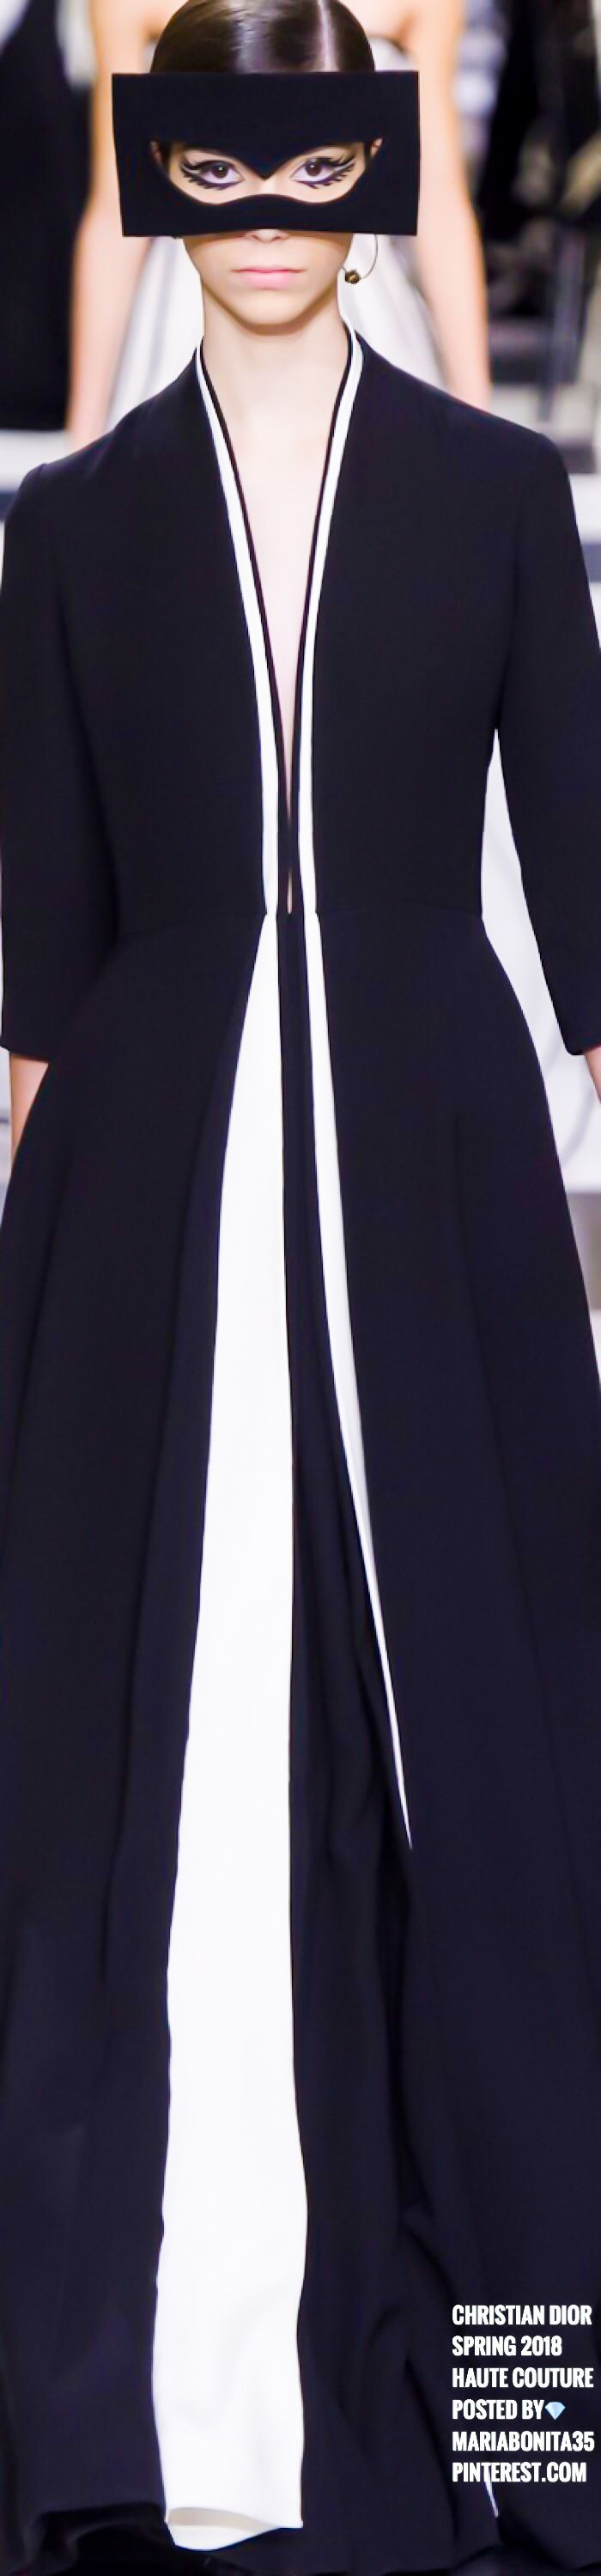 Christian Dior SS18 Haute Couture